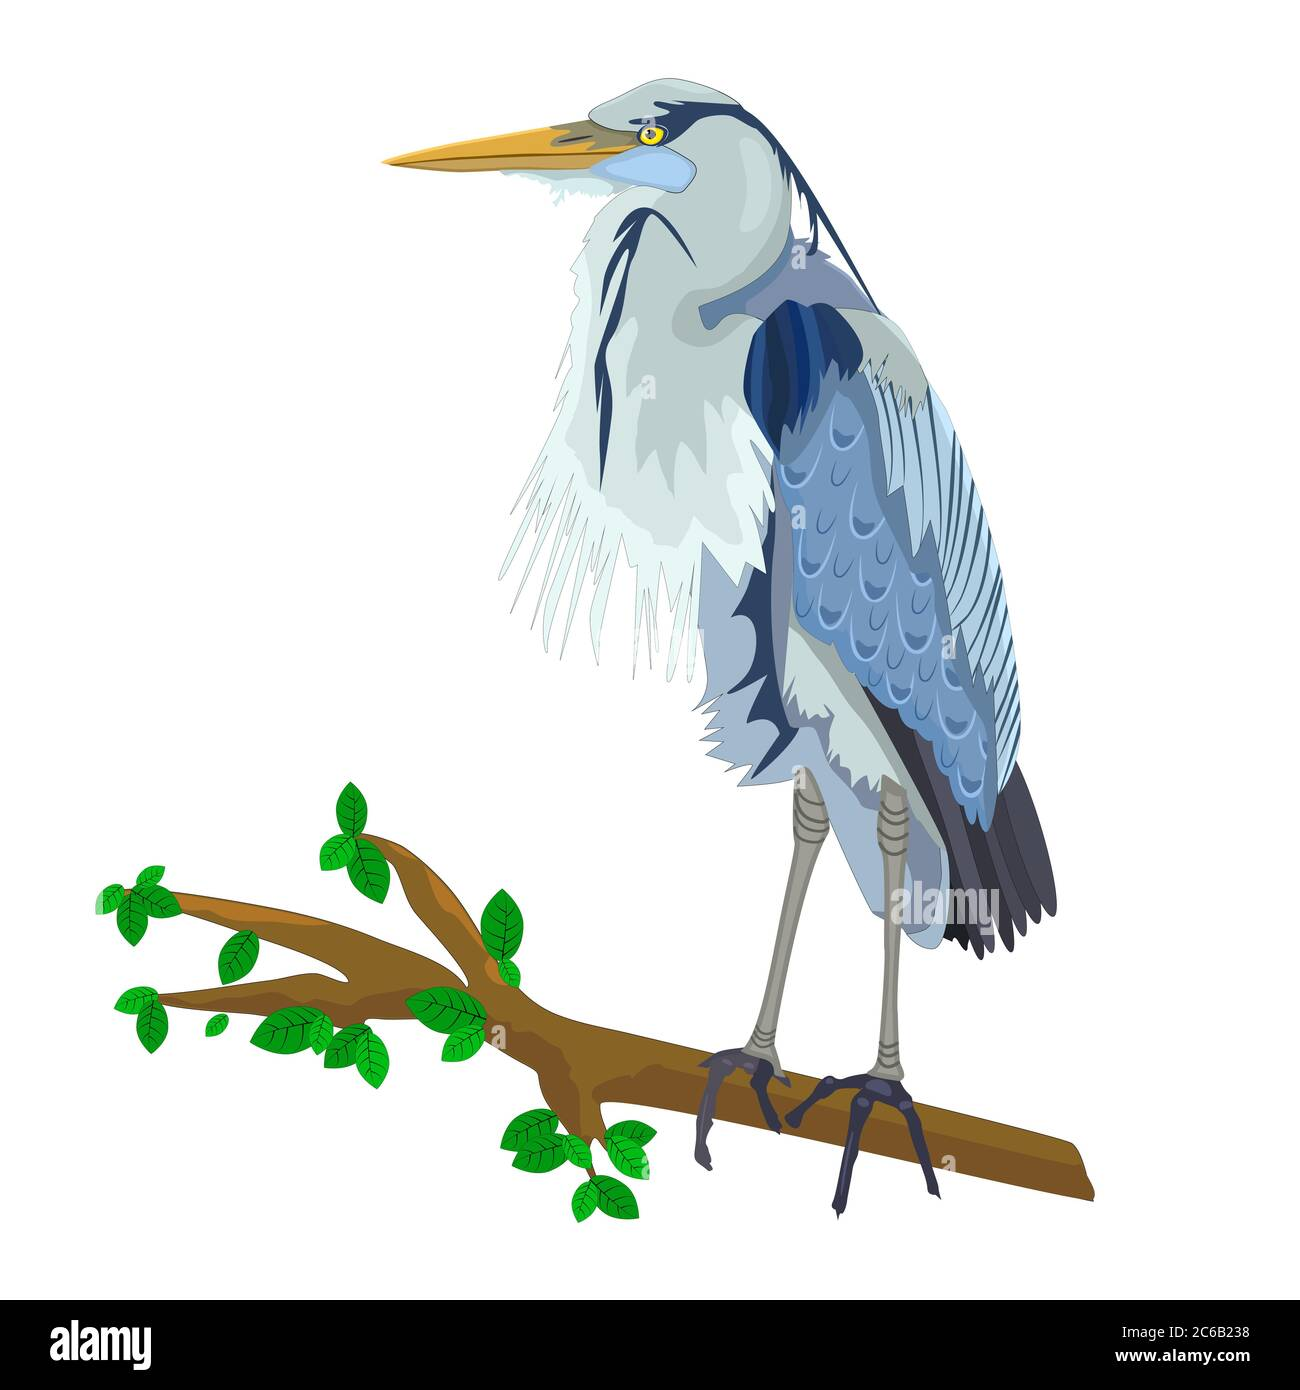 Blue Heron on tree branch isolated on white background. Heron bird.Wild egret with long beak and legs. Gray feathered stork. Stock vector illustration Stock Vector